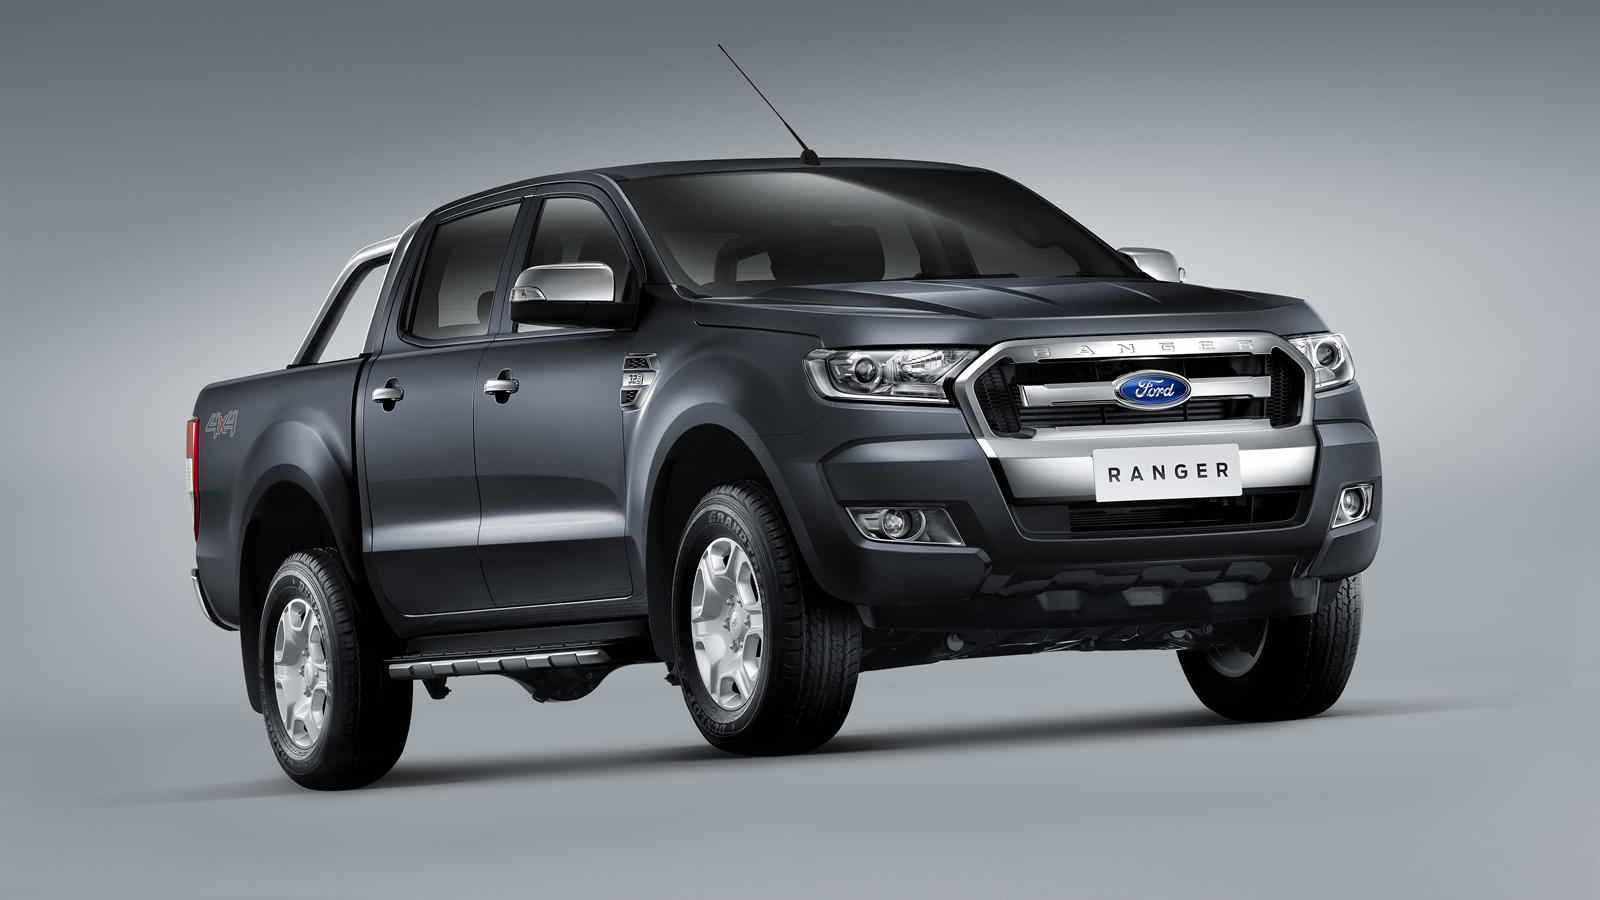 2016 Model Ford Ranger